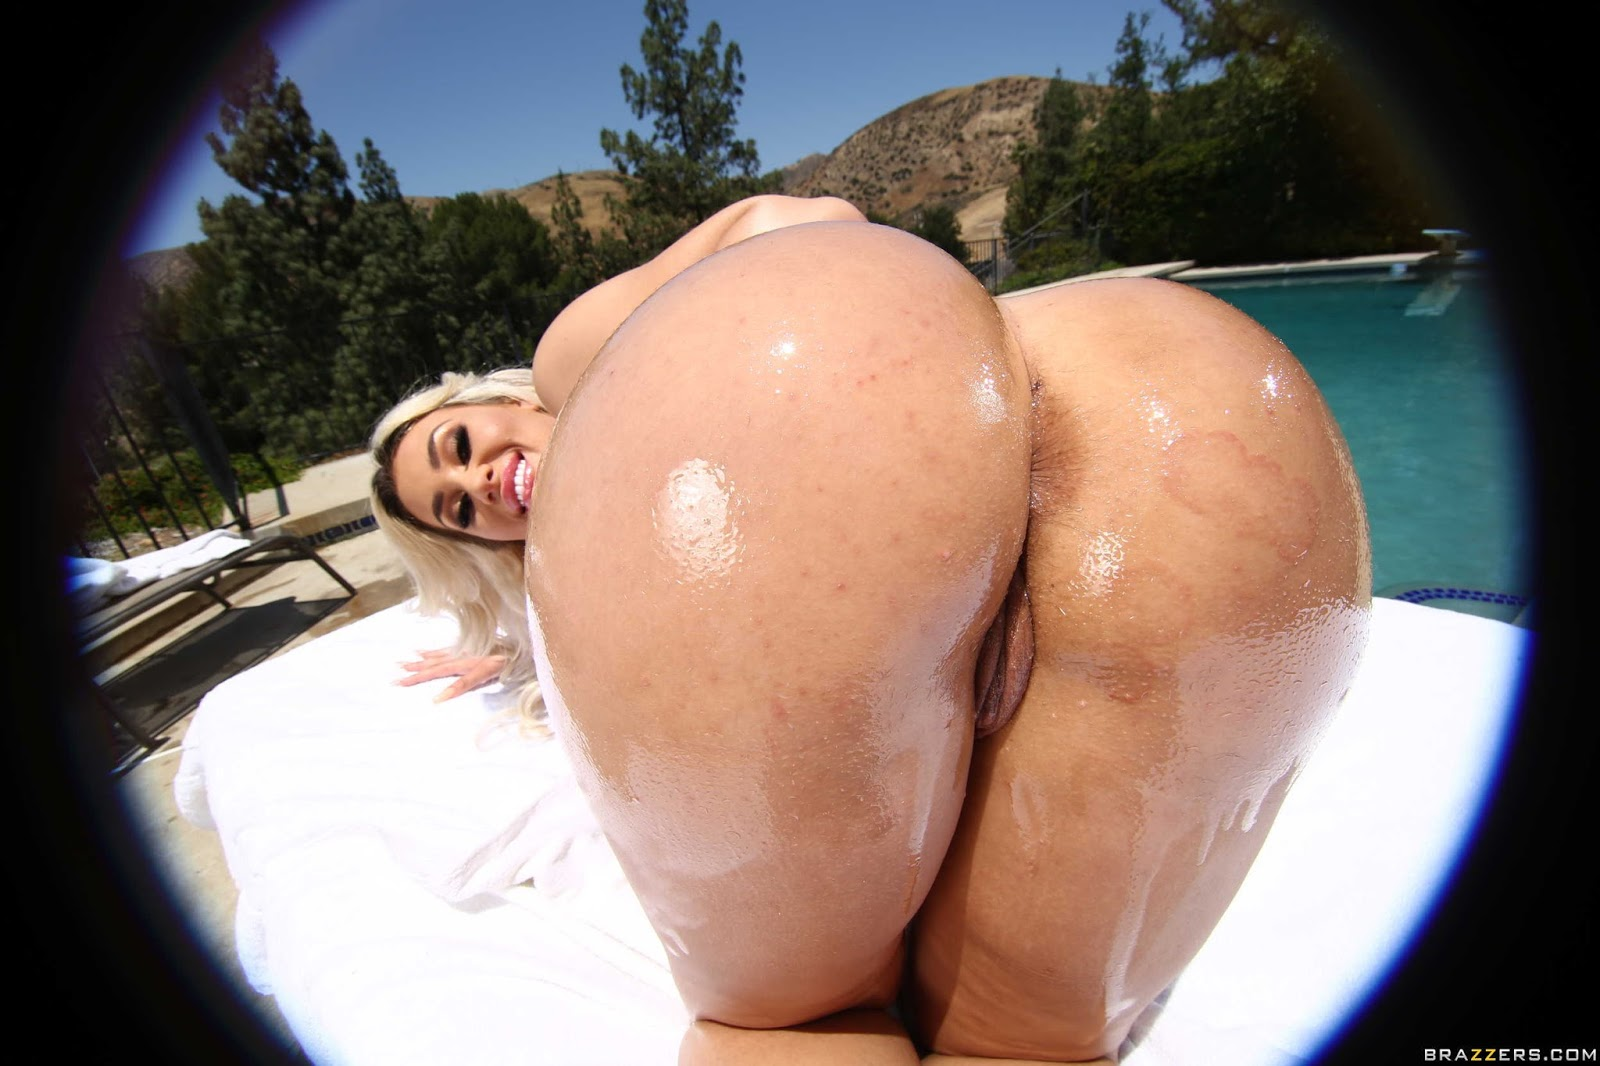 Big wet ass picture